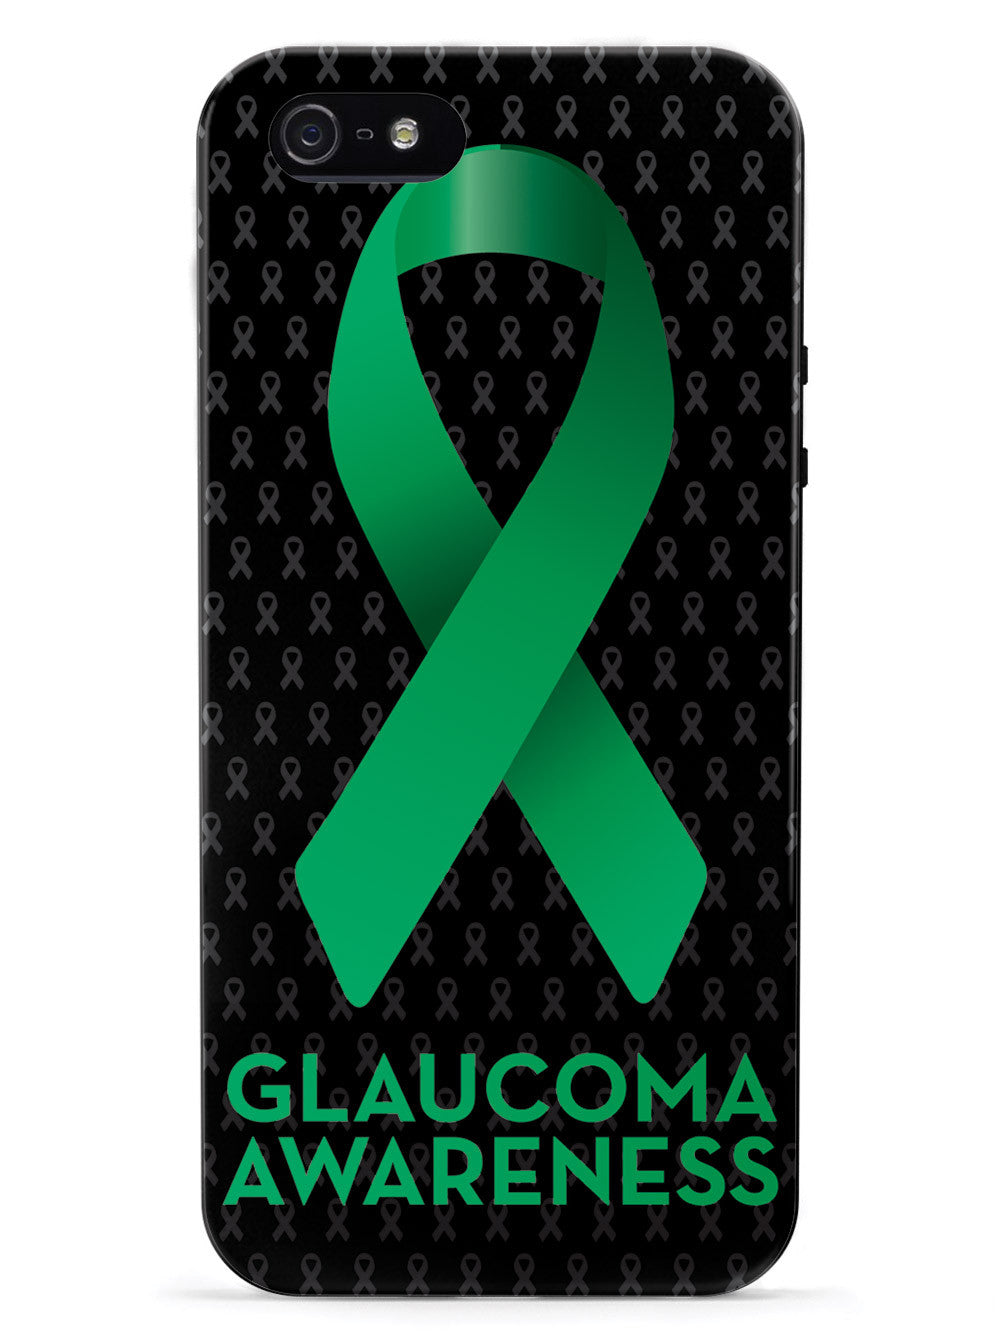 Glaucoma Awareness Green Ribbon - Black Case